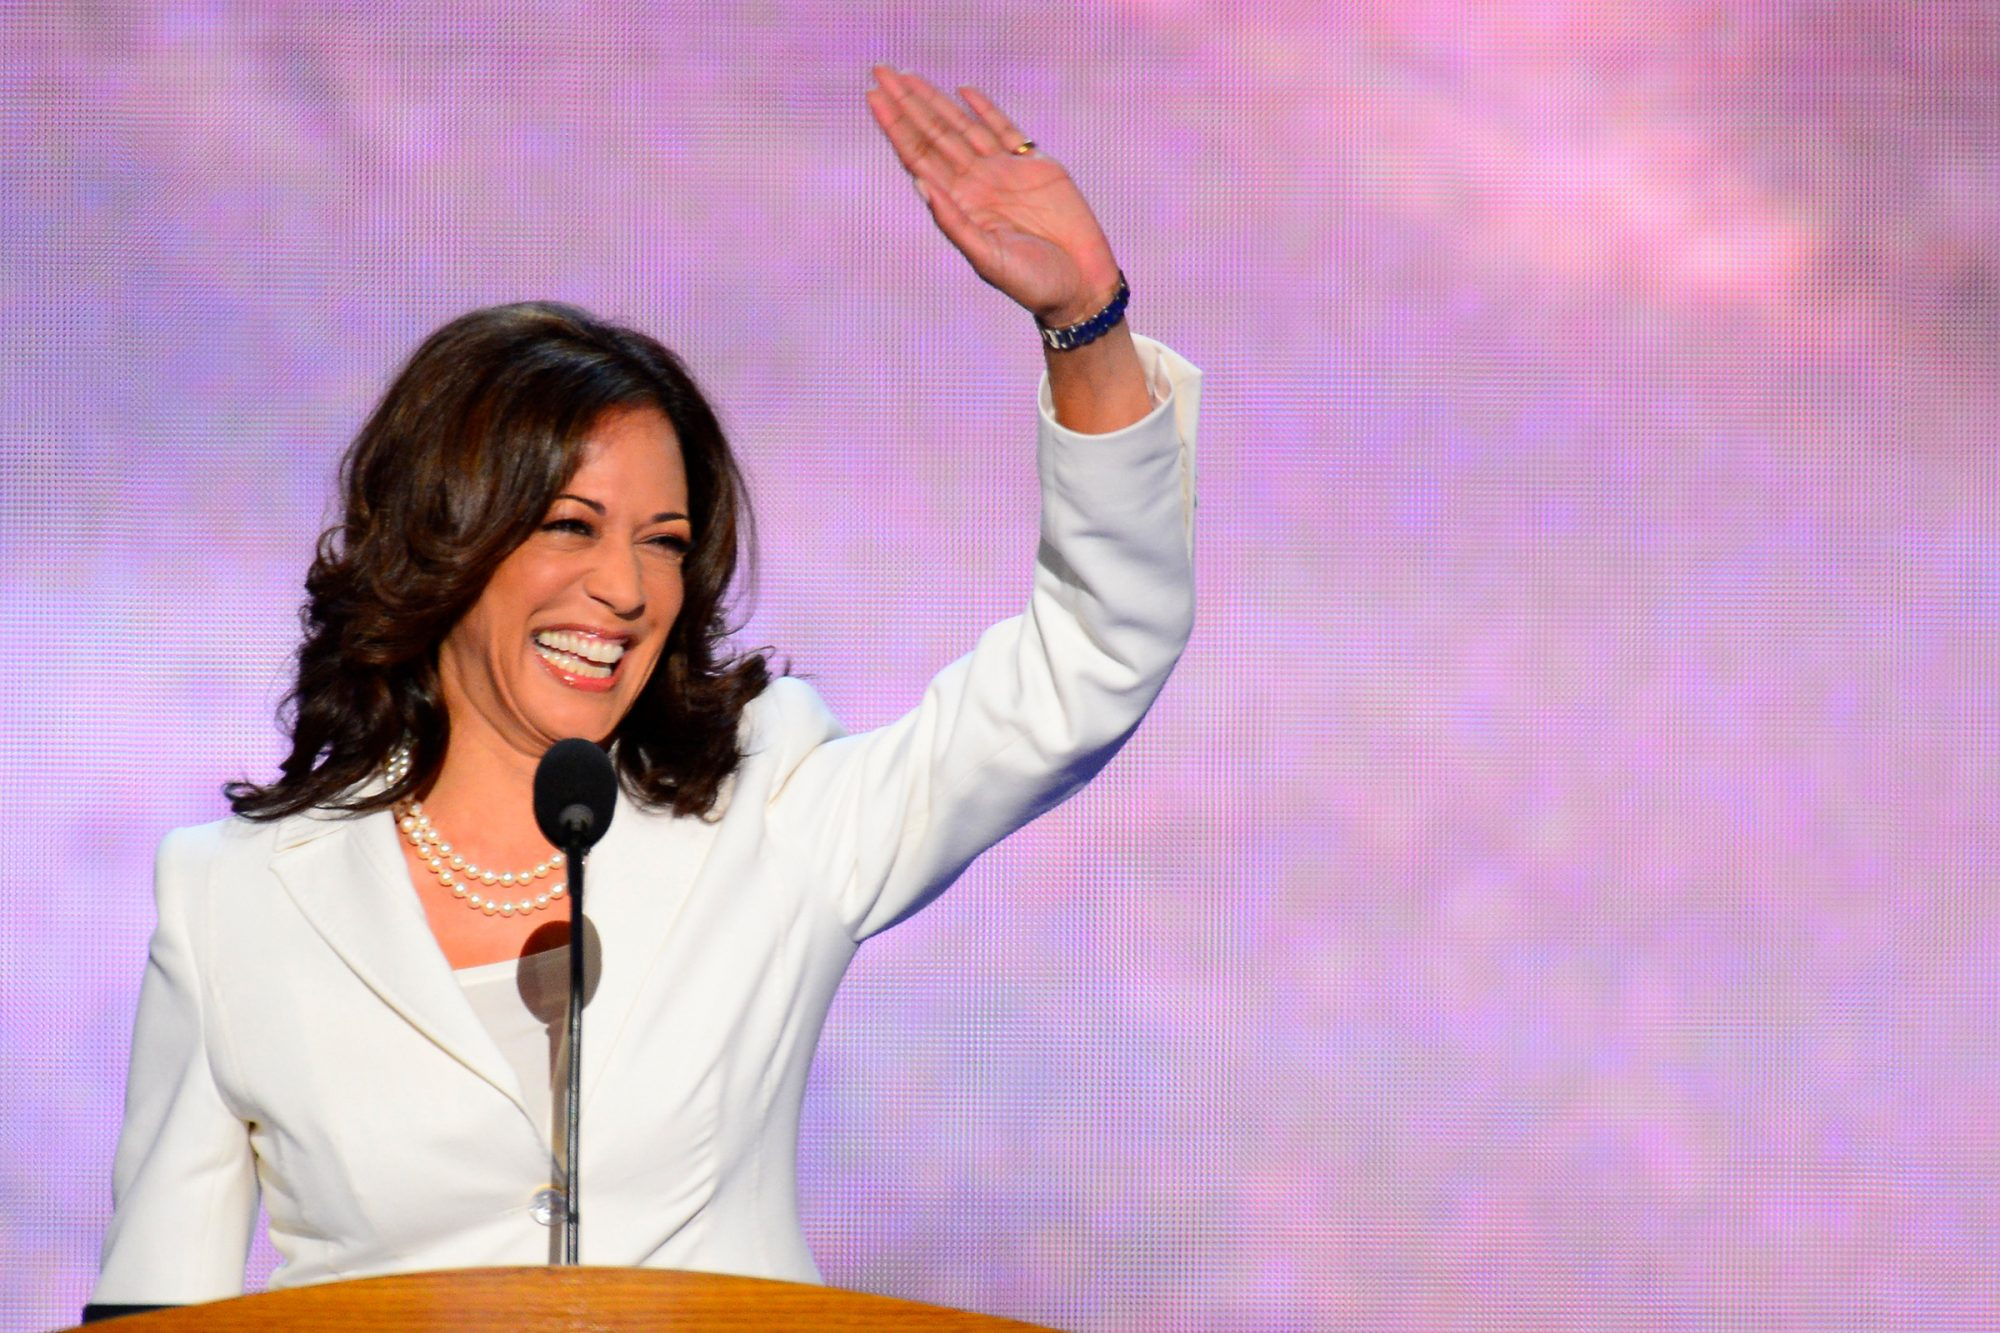 California Attorney General Kamala D. Harris speaks on the second night of the 2012 Democratic National Convention at Time Warner Cable Arena, Wednesday, September 5, 2012 in Charlotte, North Carolina